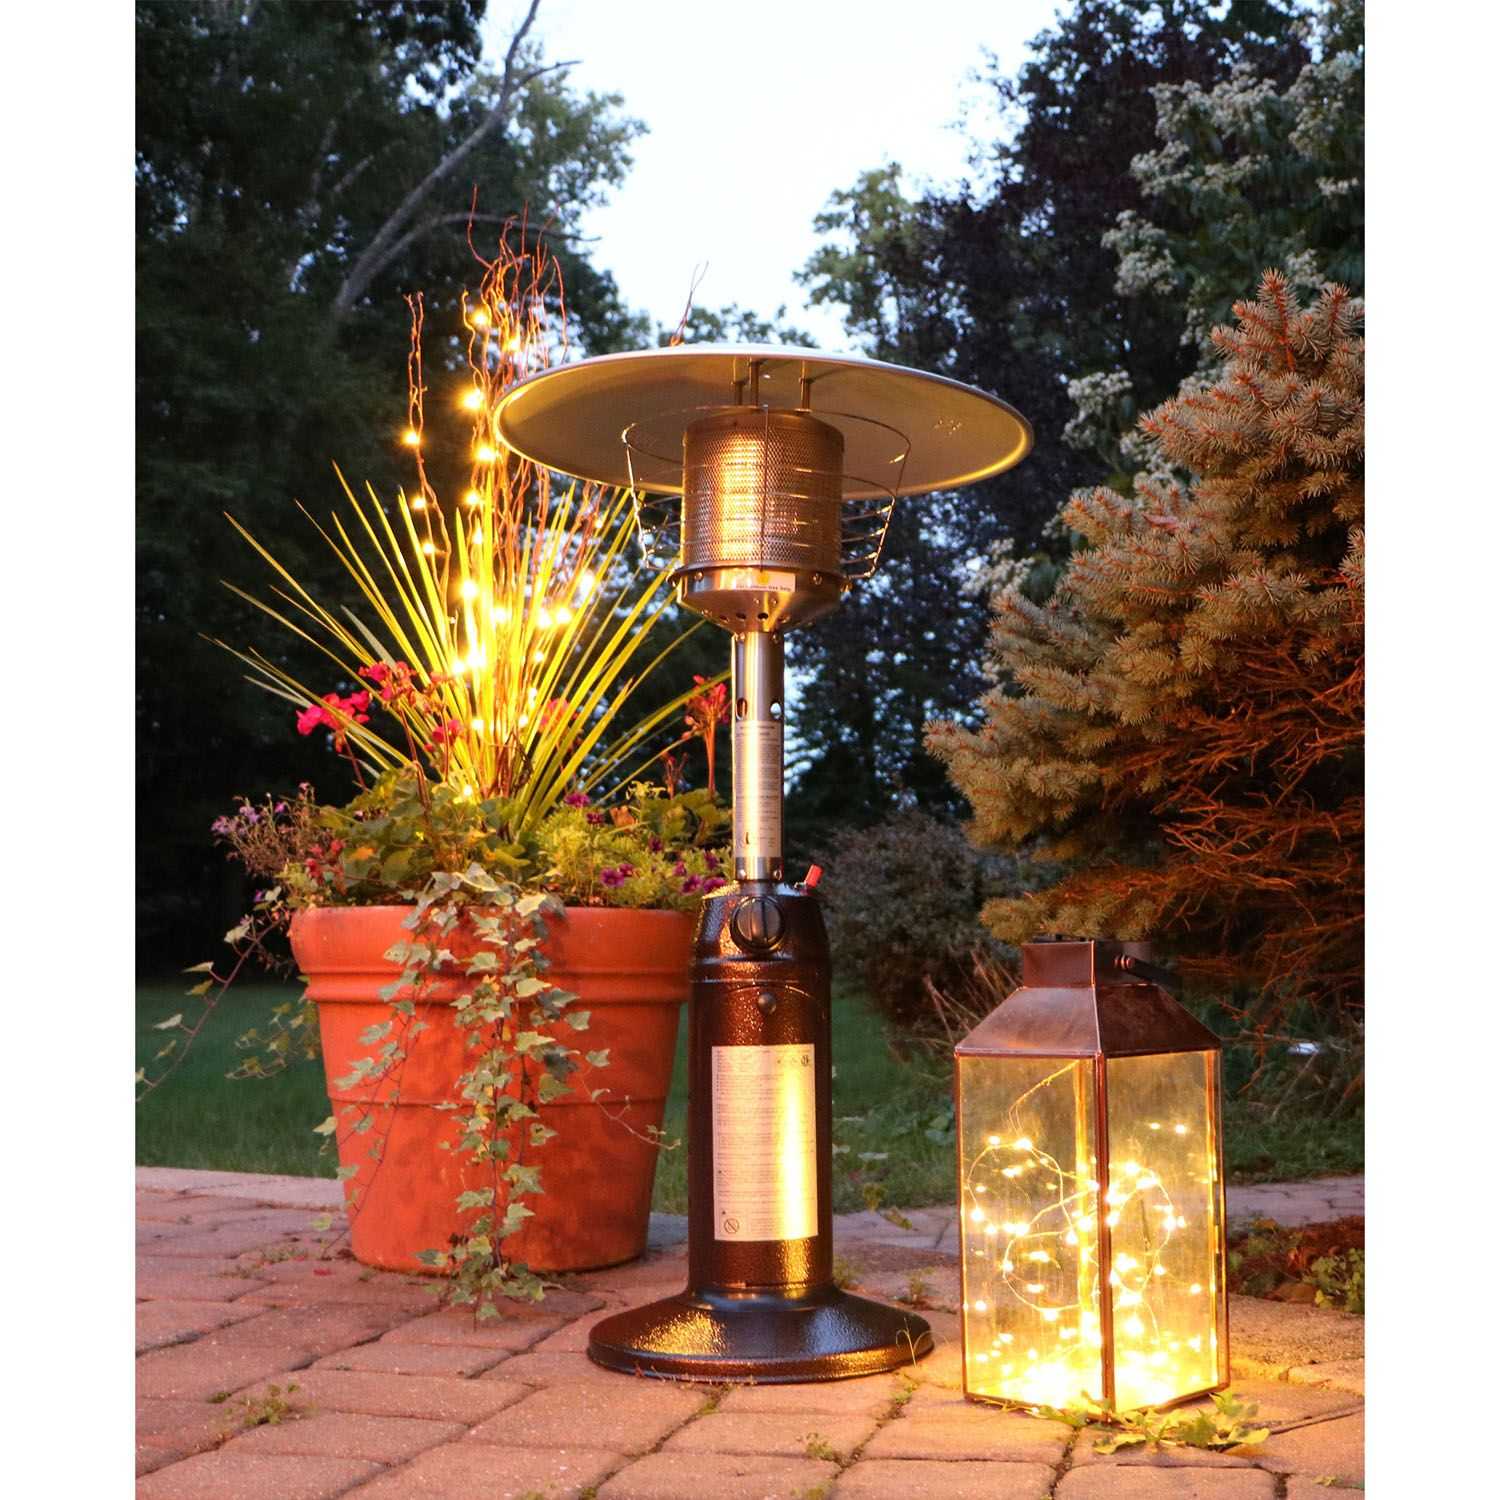 Hanover Mini Umbrella Tabletop Propane Patio Heater In Hammered Bronze    HAN0204HB